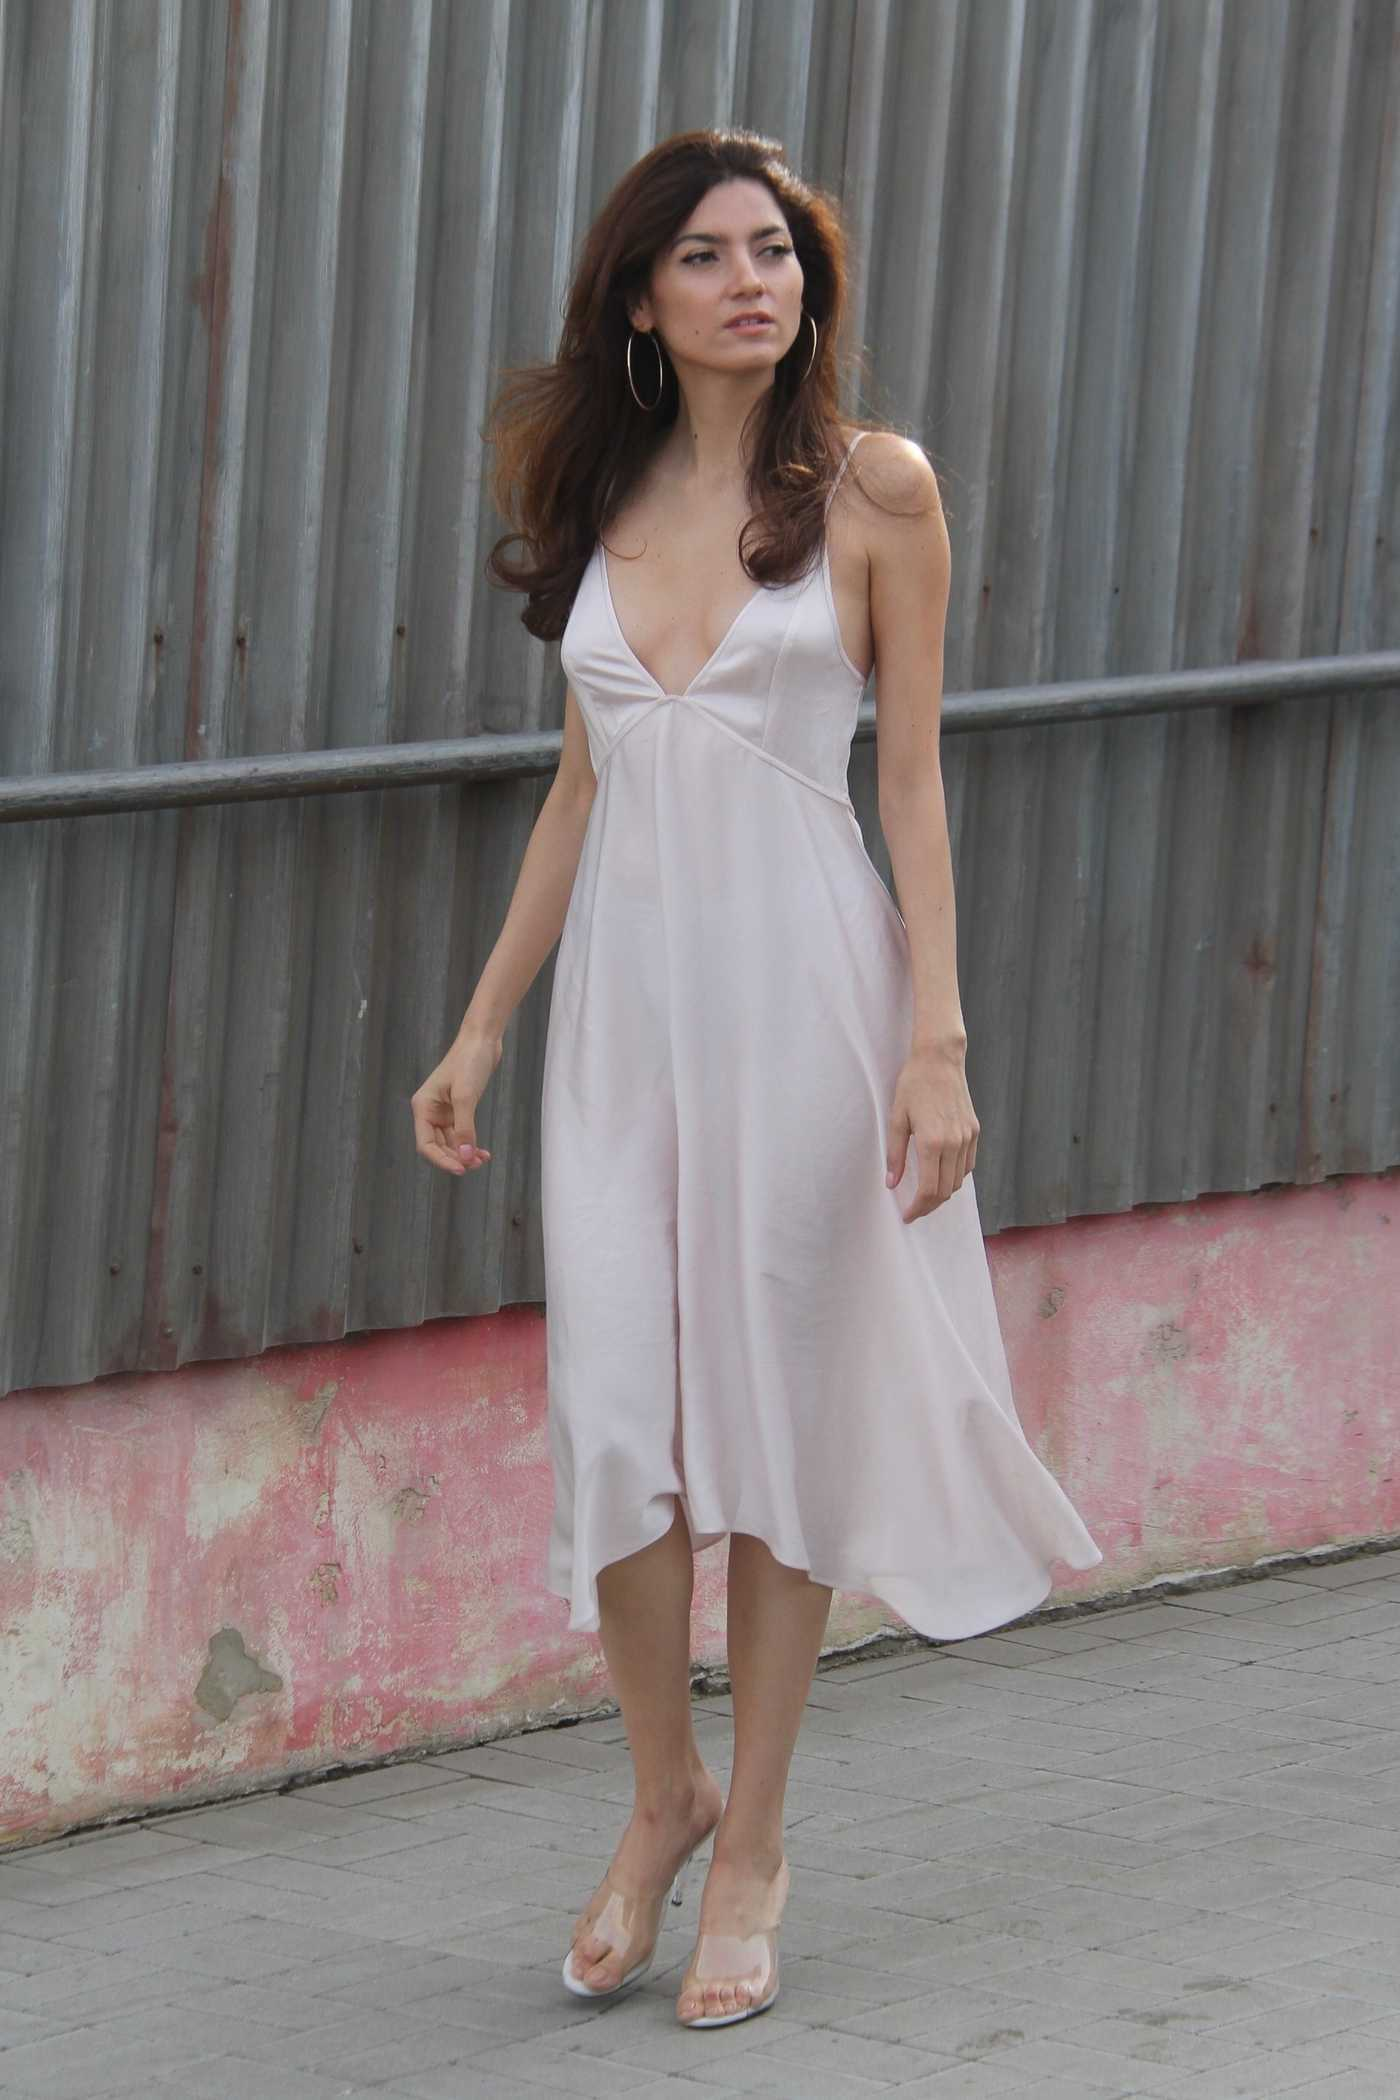 Blanca Blanco in a White Dress Was Seen Out in Malibu 12/22/2018